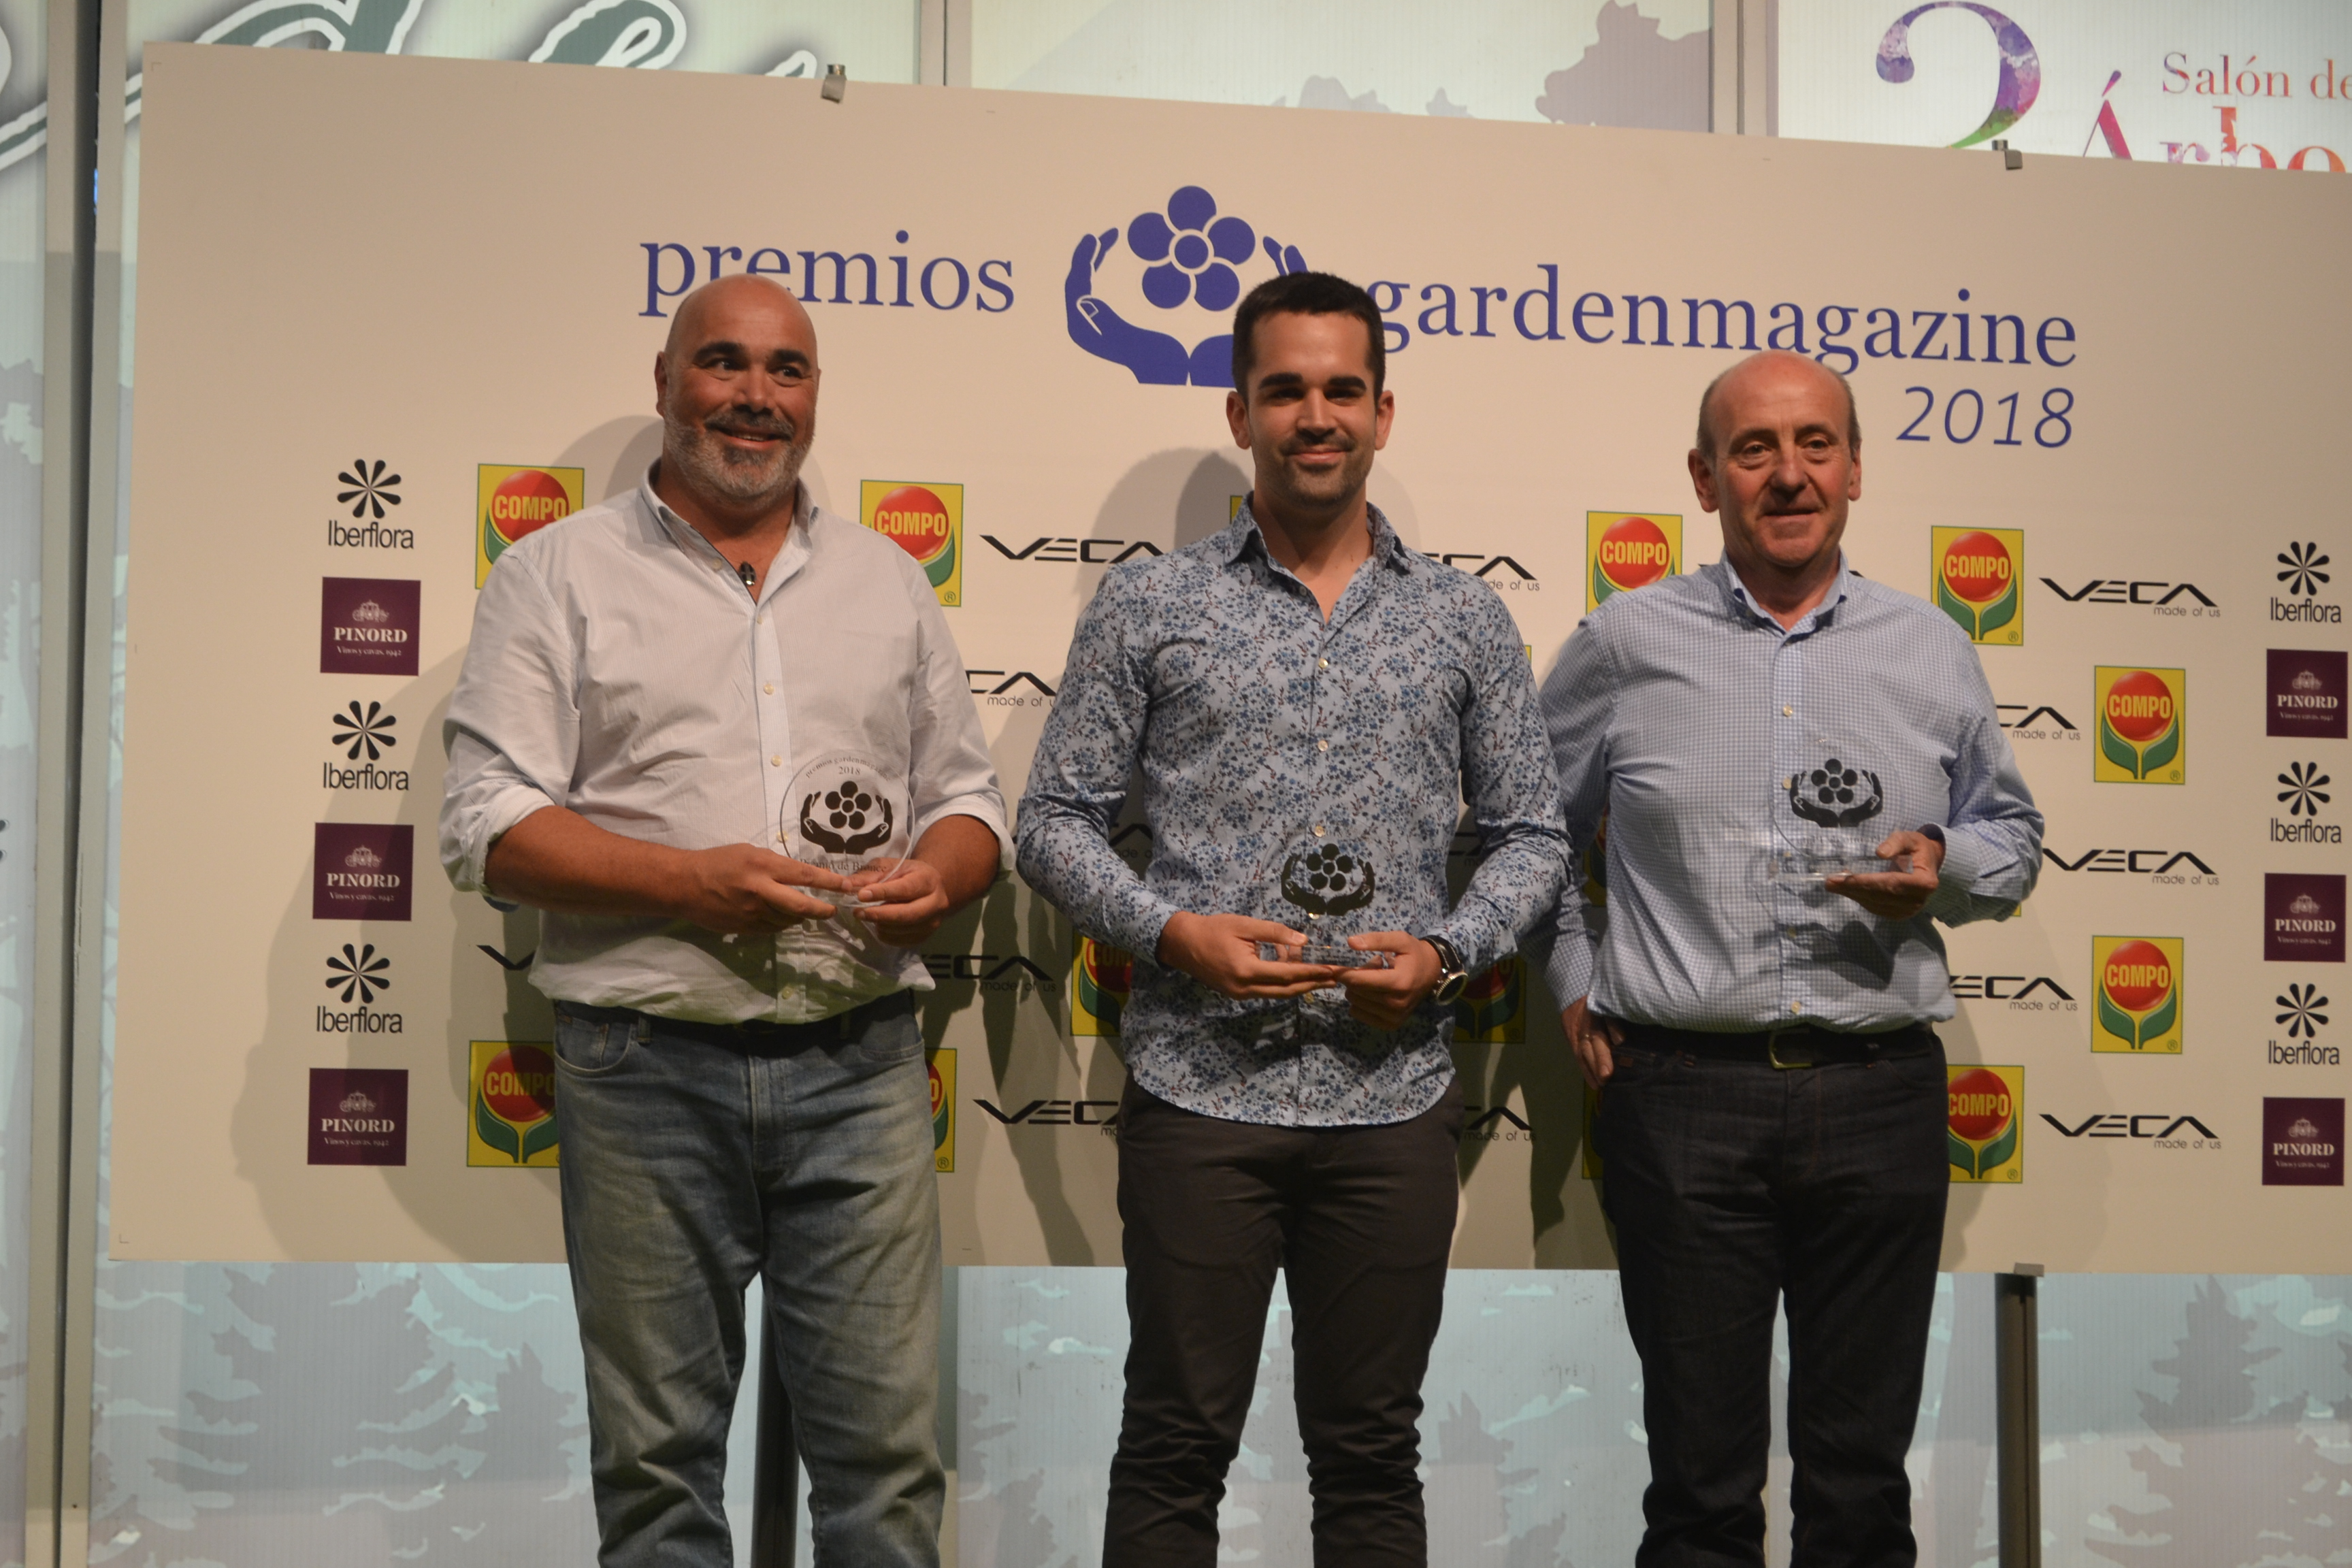 Awards-garden-magazine-18-iberflora